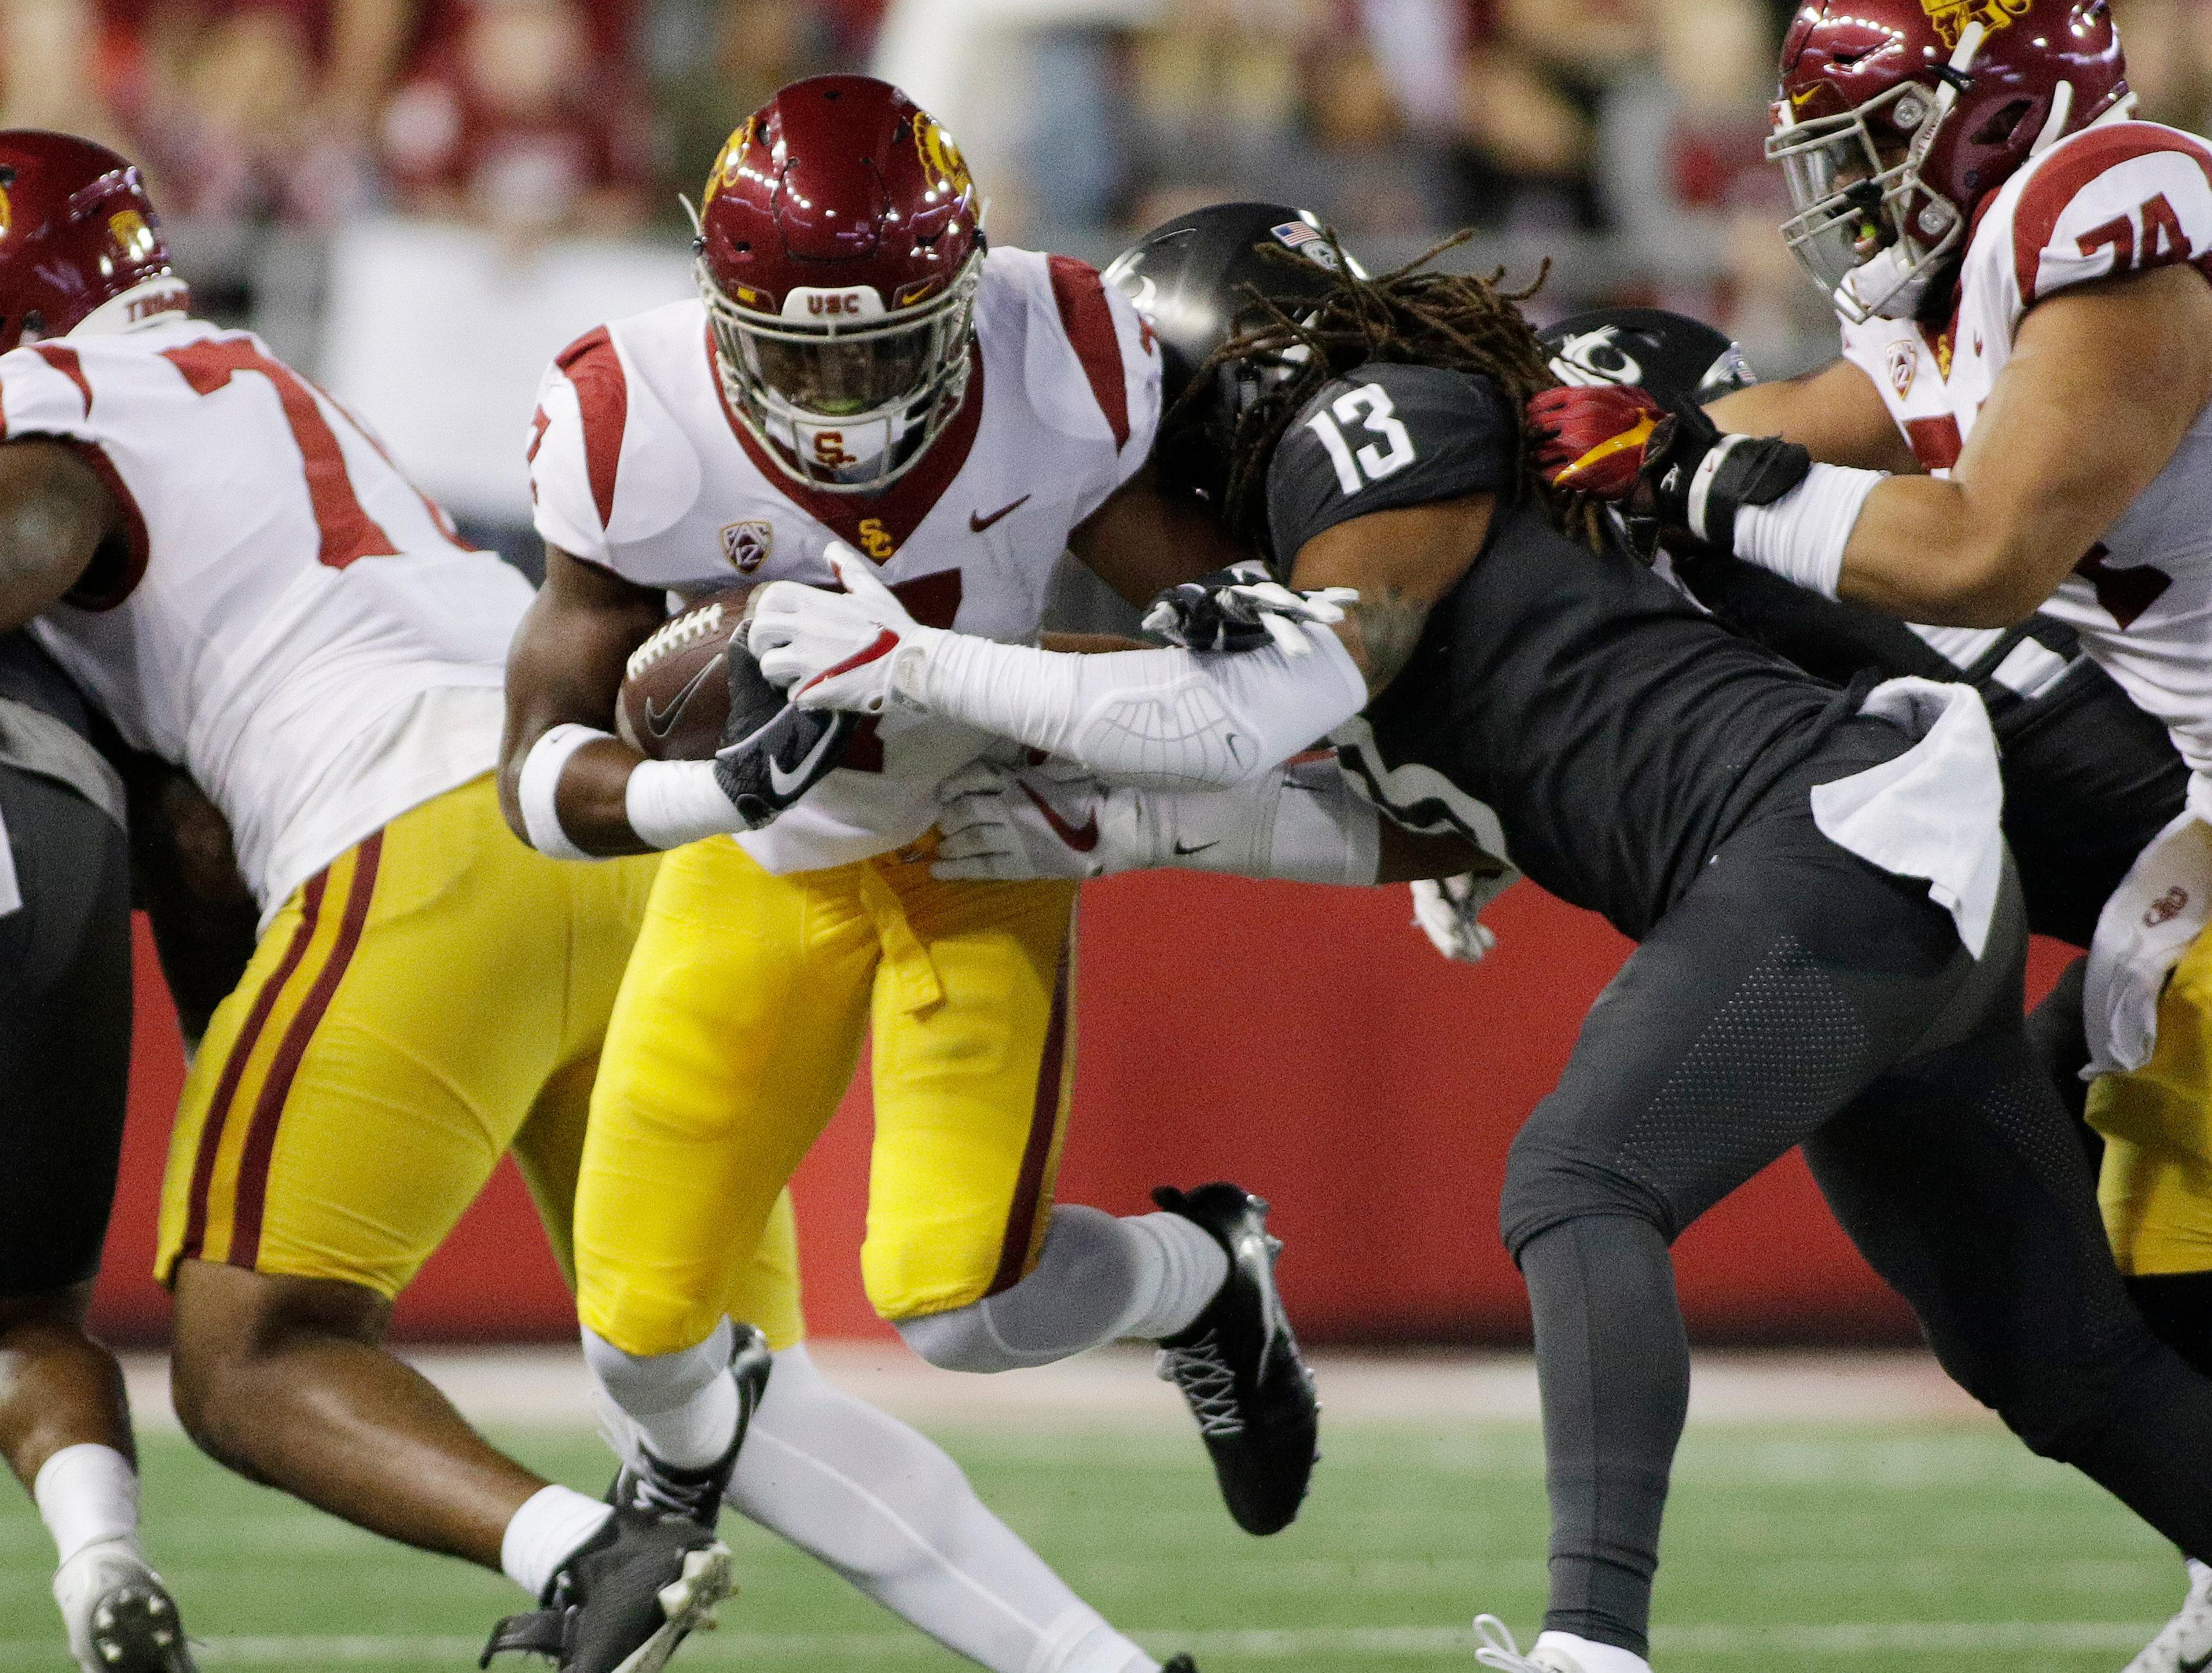 Washington State linebacker Jahad Woods (13) tackles Southern California tailback Stephen Carr (7) during the first half of an NCAA college football game in Pullman, Wash., Friday, Sept. 29, 2017. (AP Photo/Young Kwak)